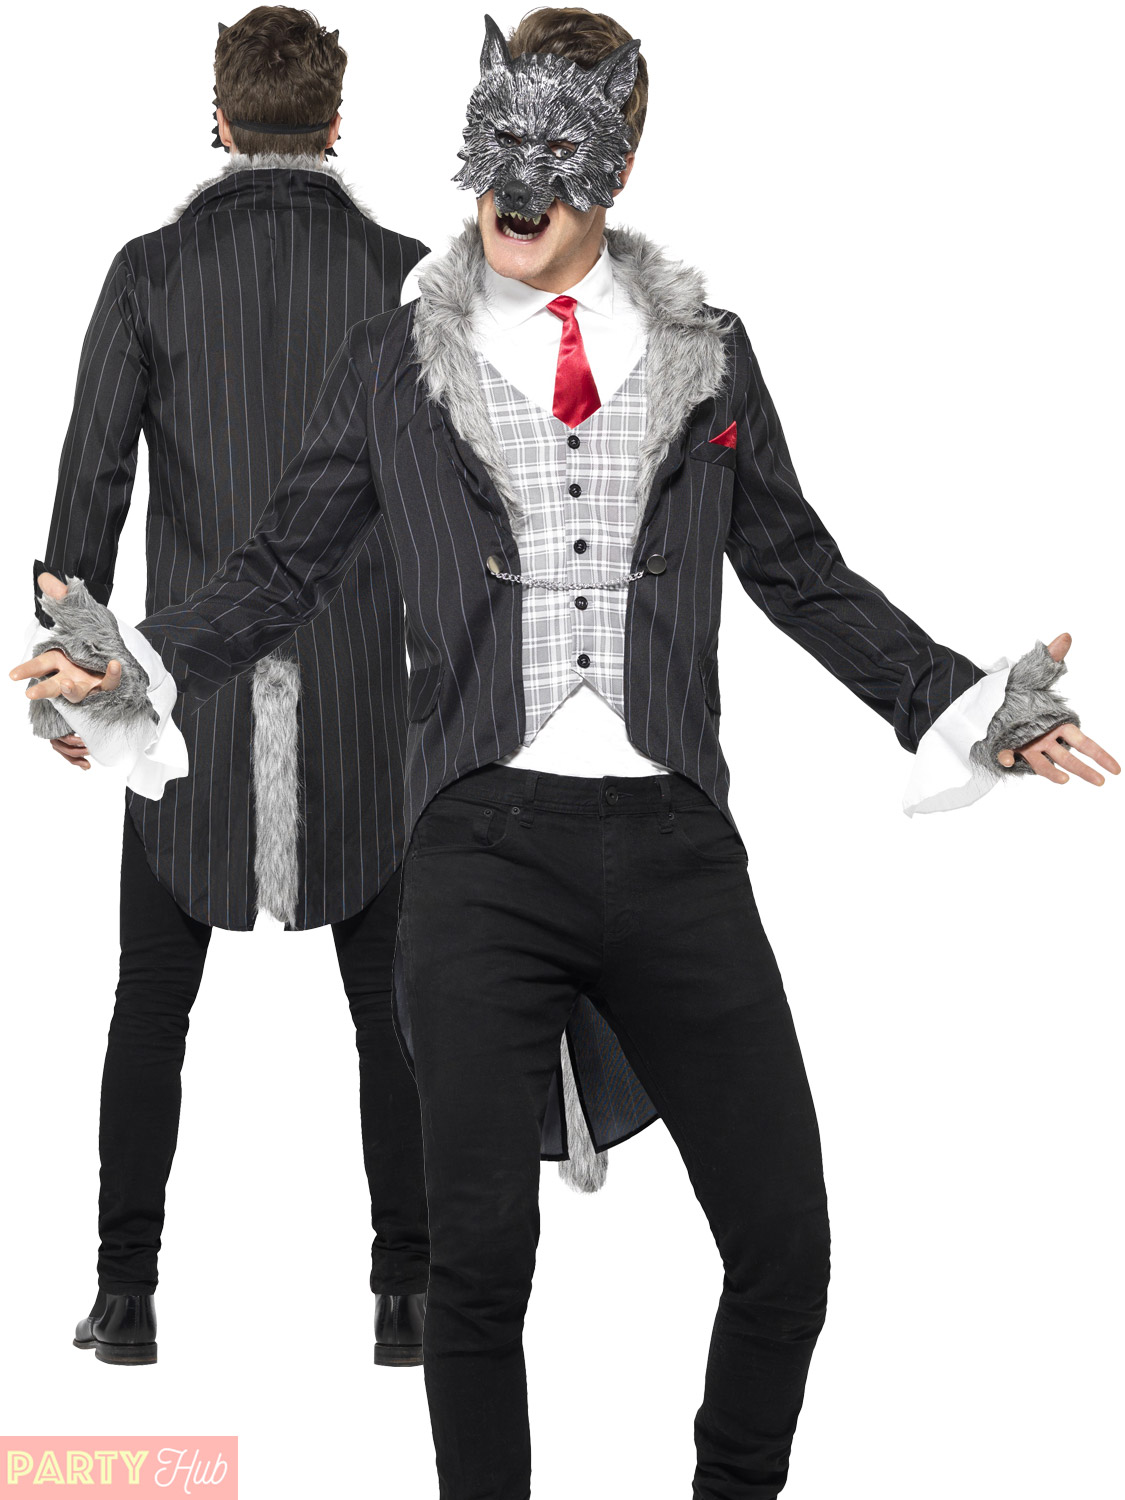 Big Bad Wolf Costume men's Halloween outfit PpGaIet8D